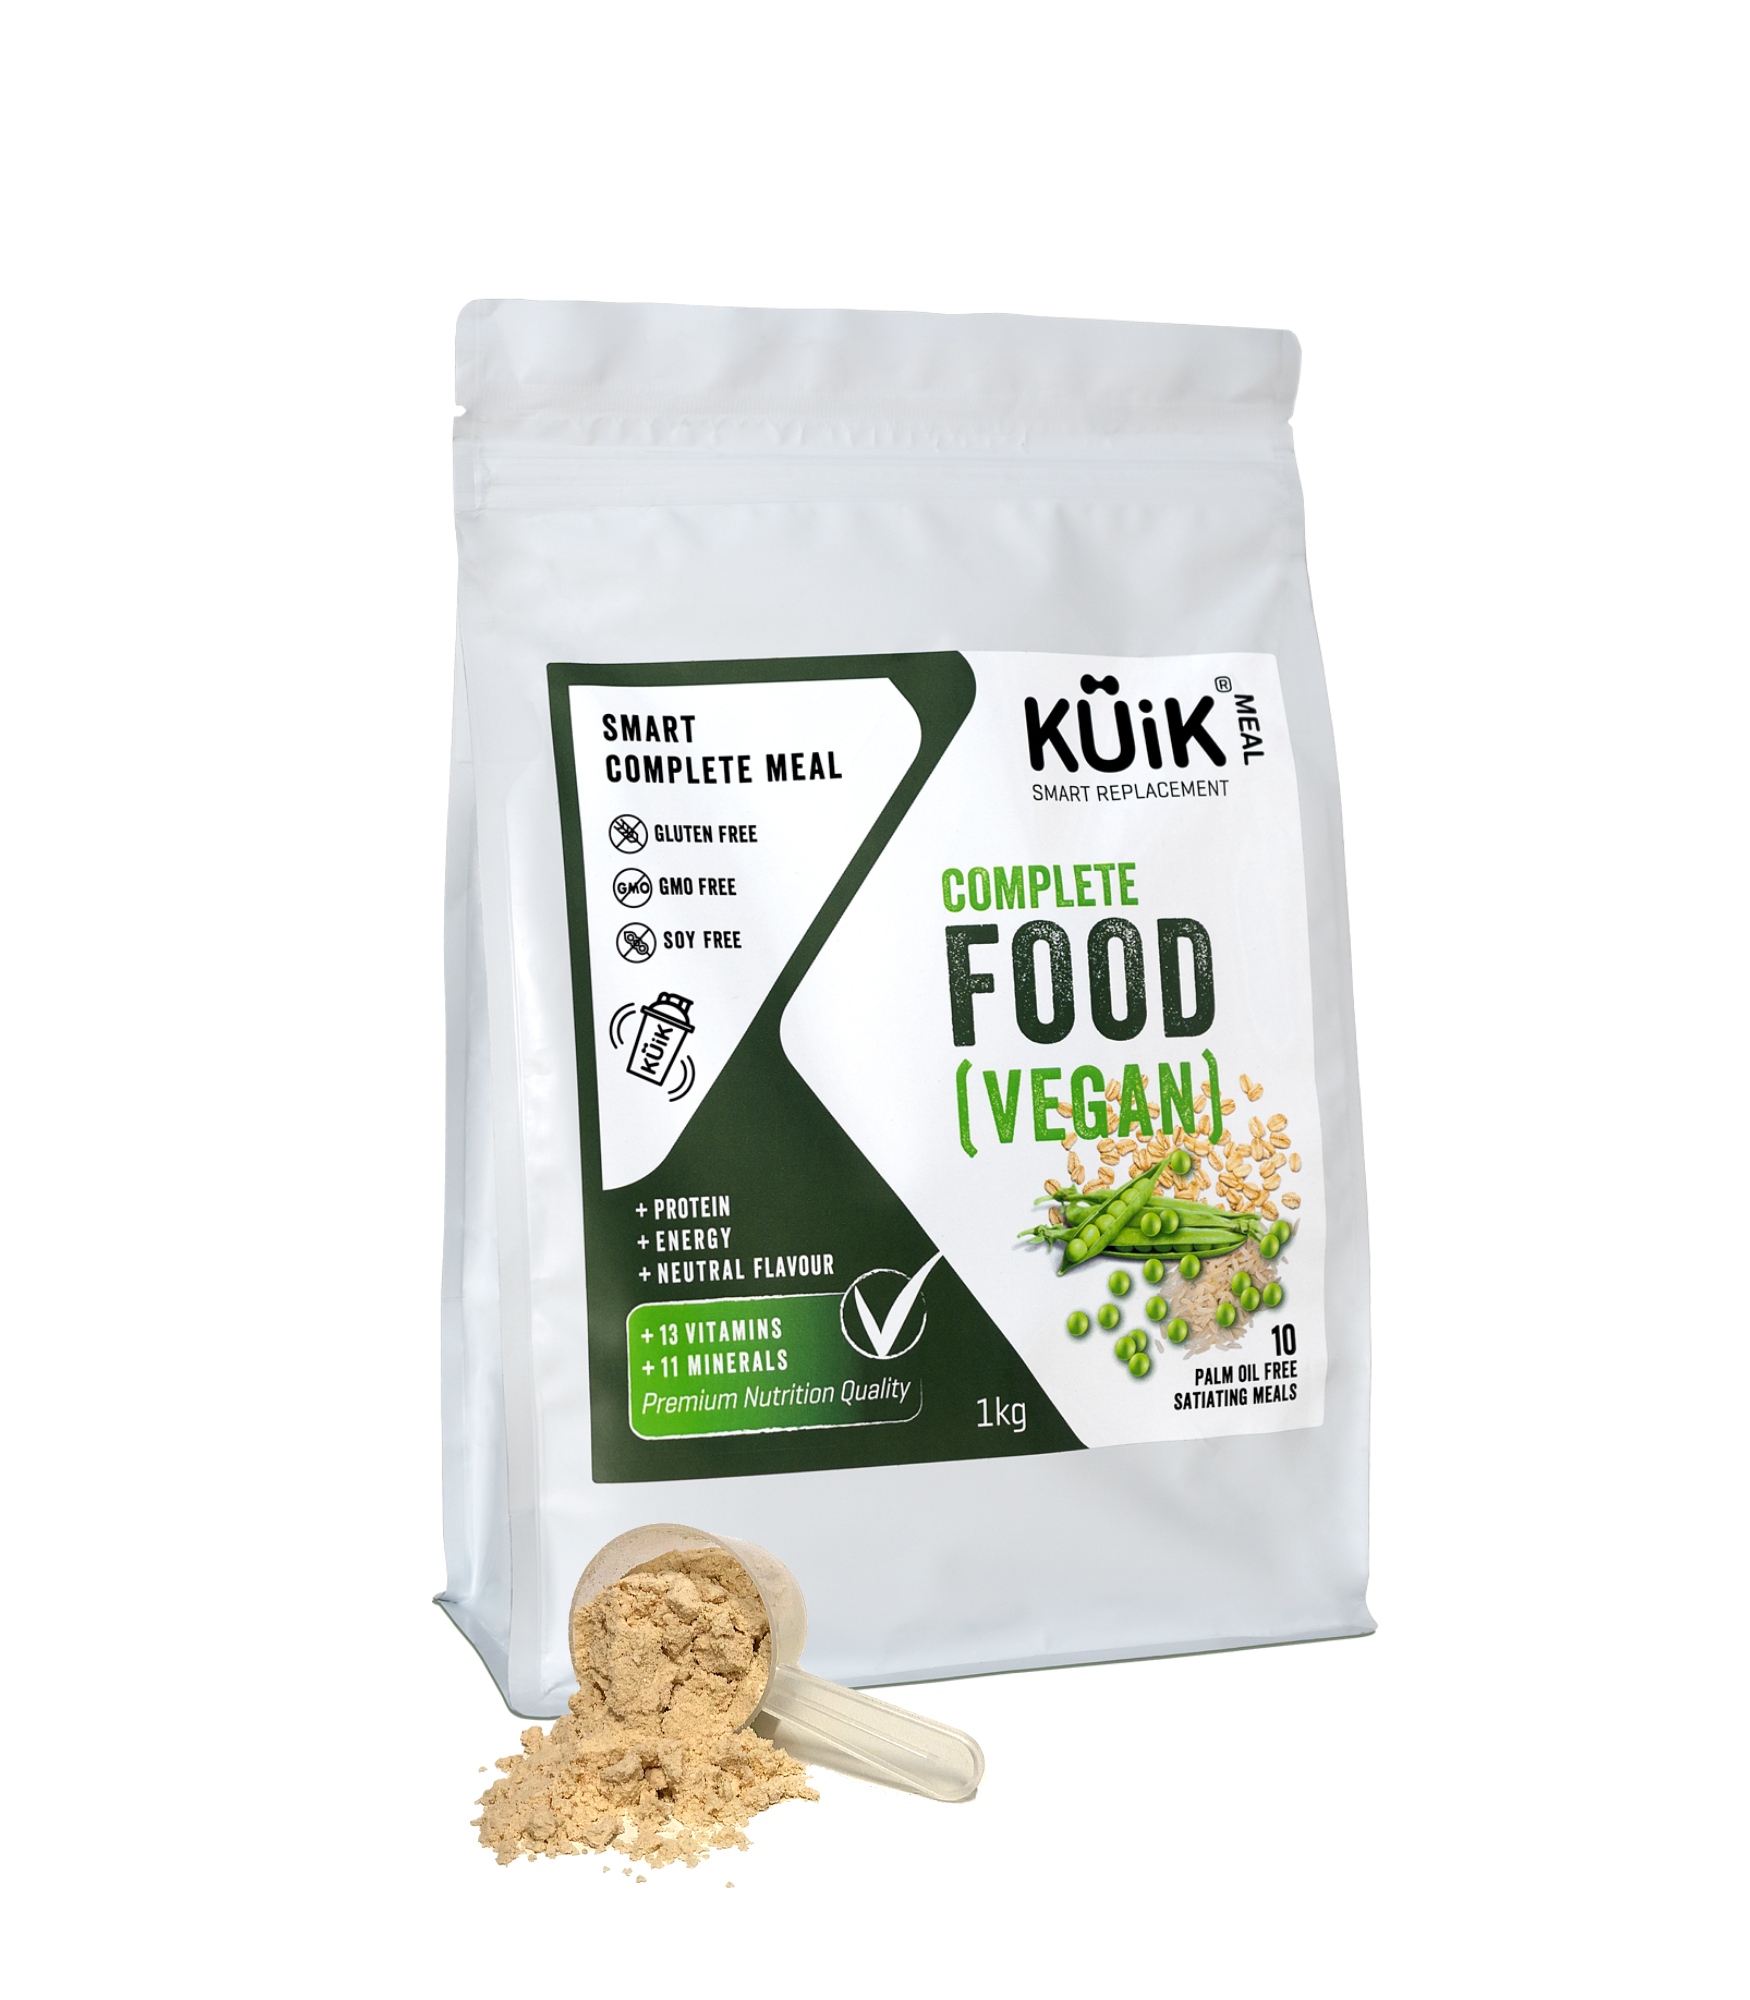 Kuik Meal Vegan Complete meal replacement